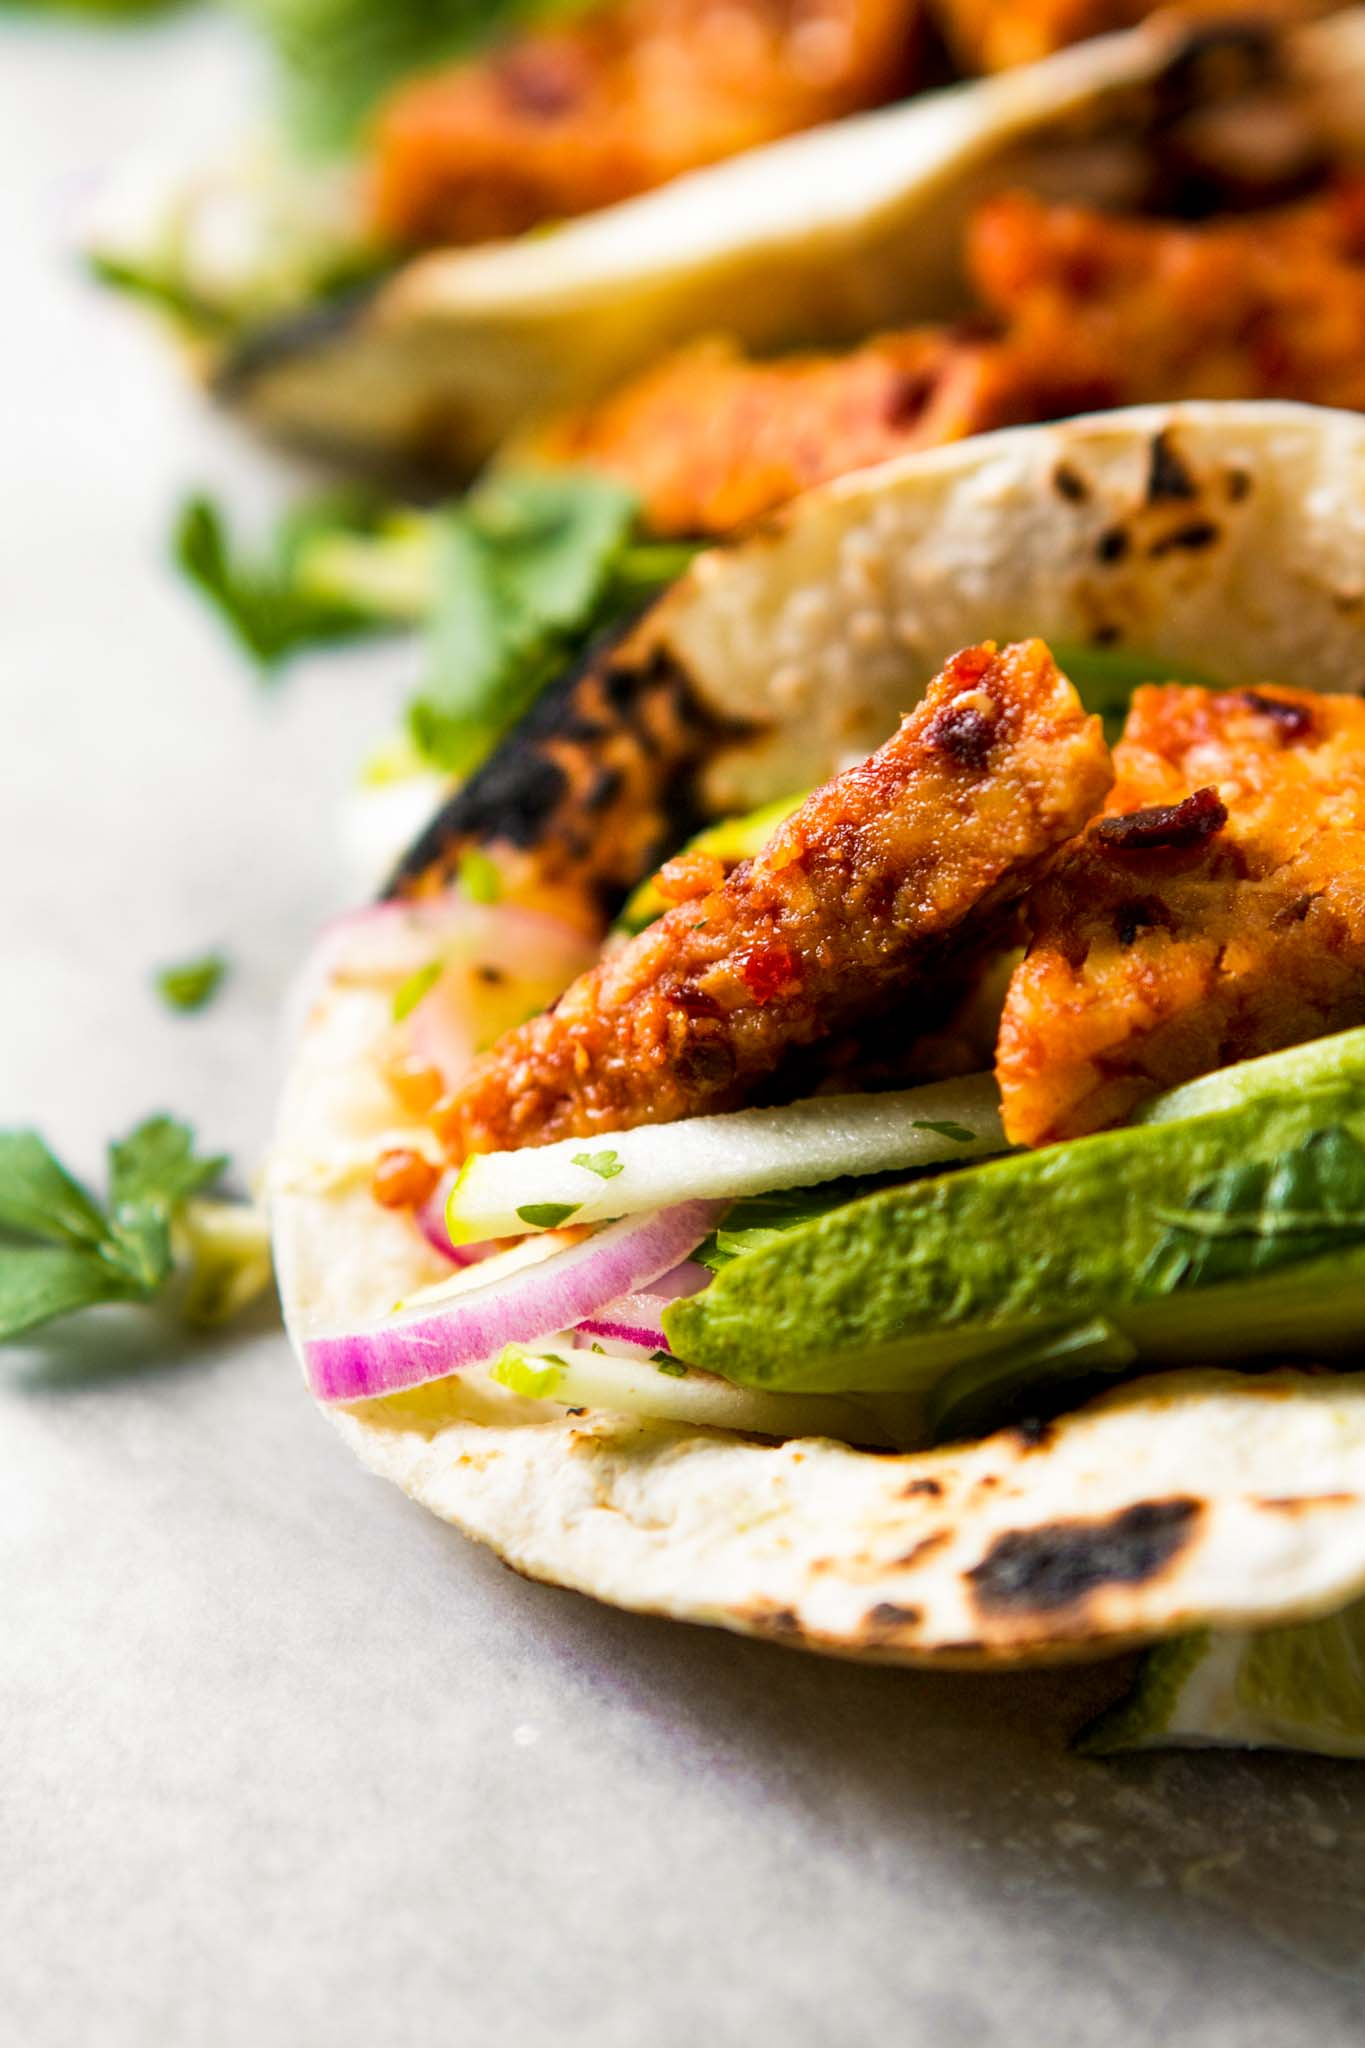 Close up photograph of marinated baked tempe stuffed into a tortilla with red onion, avocado, slaw and cilantro.